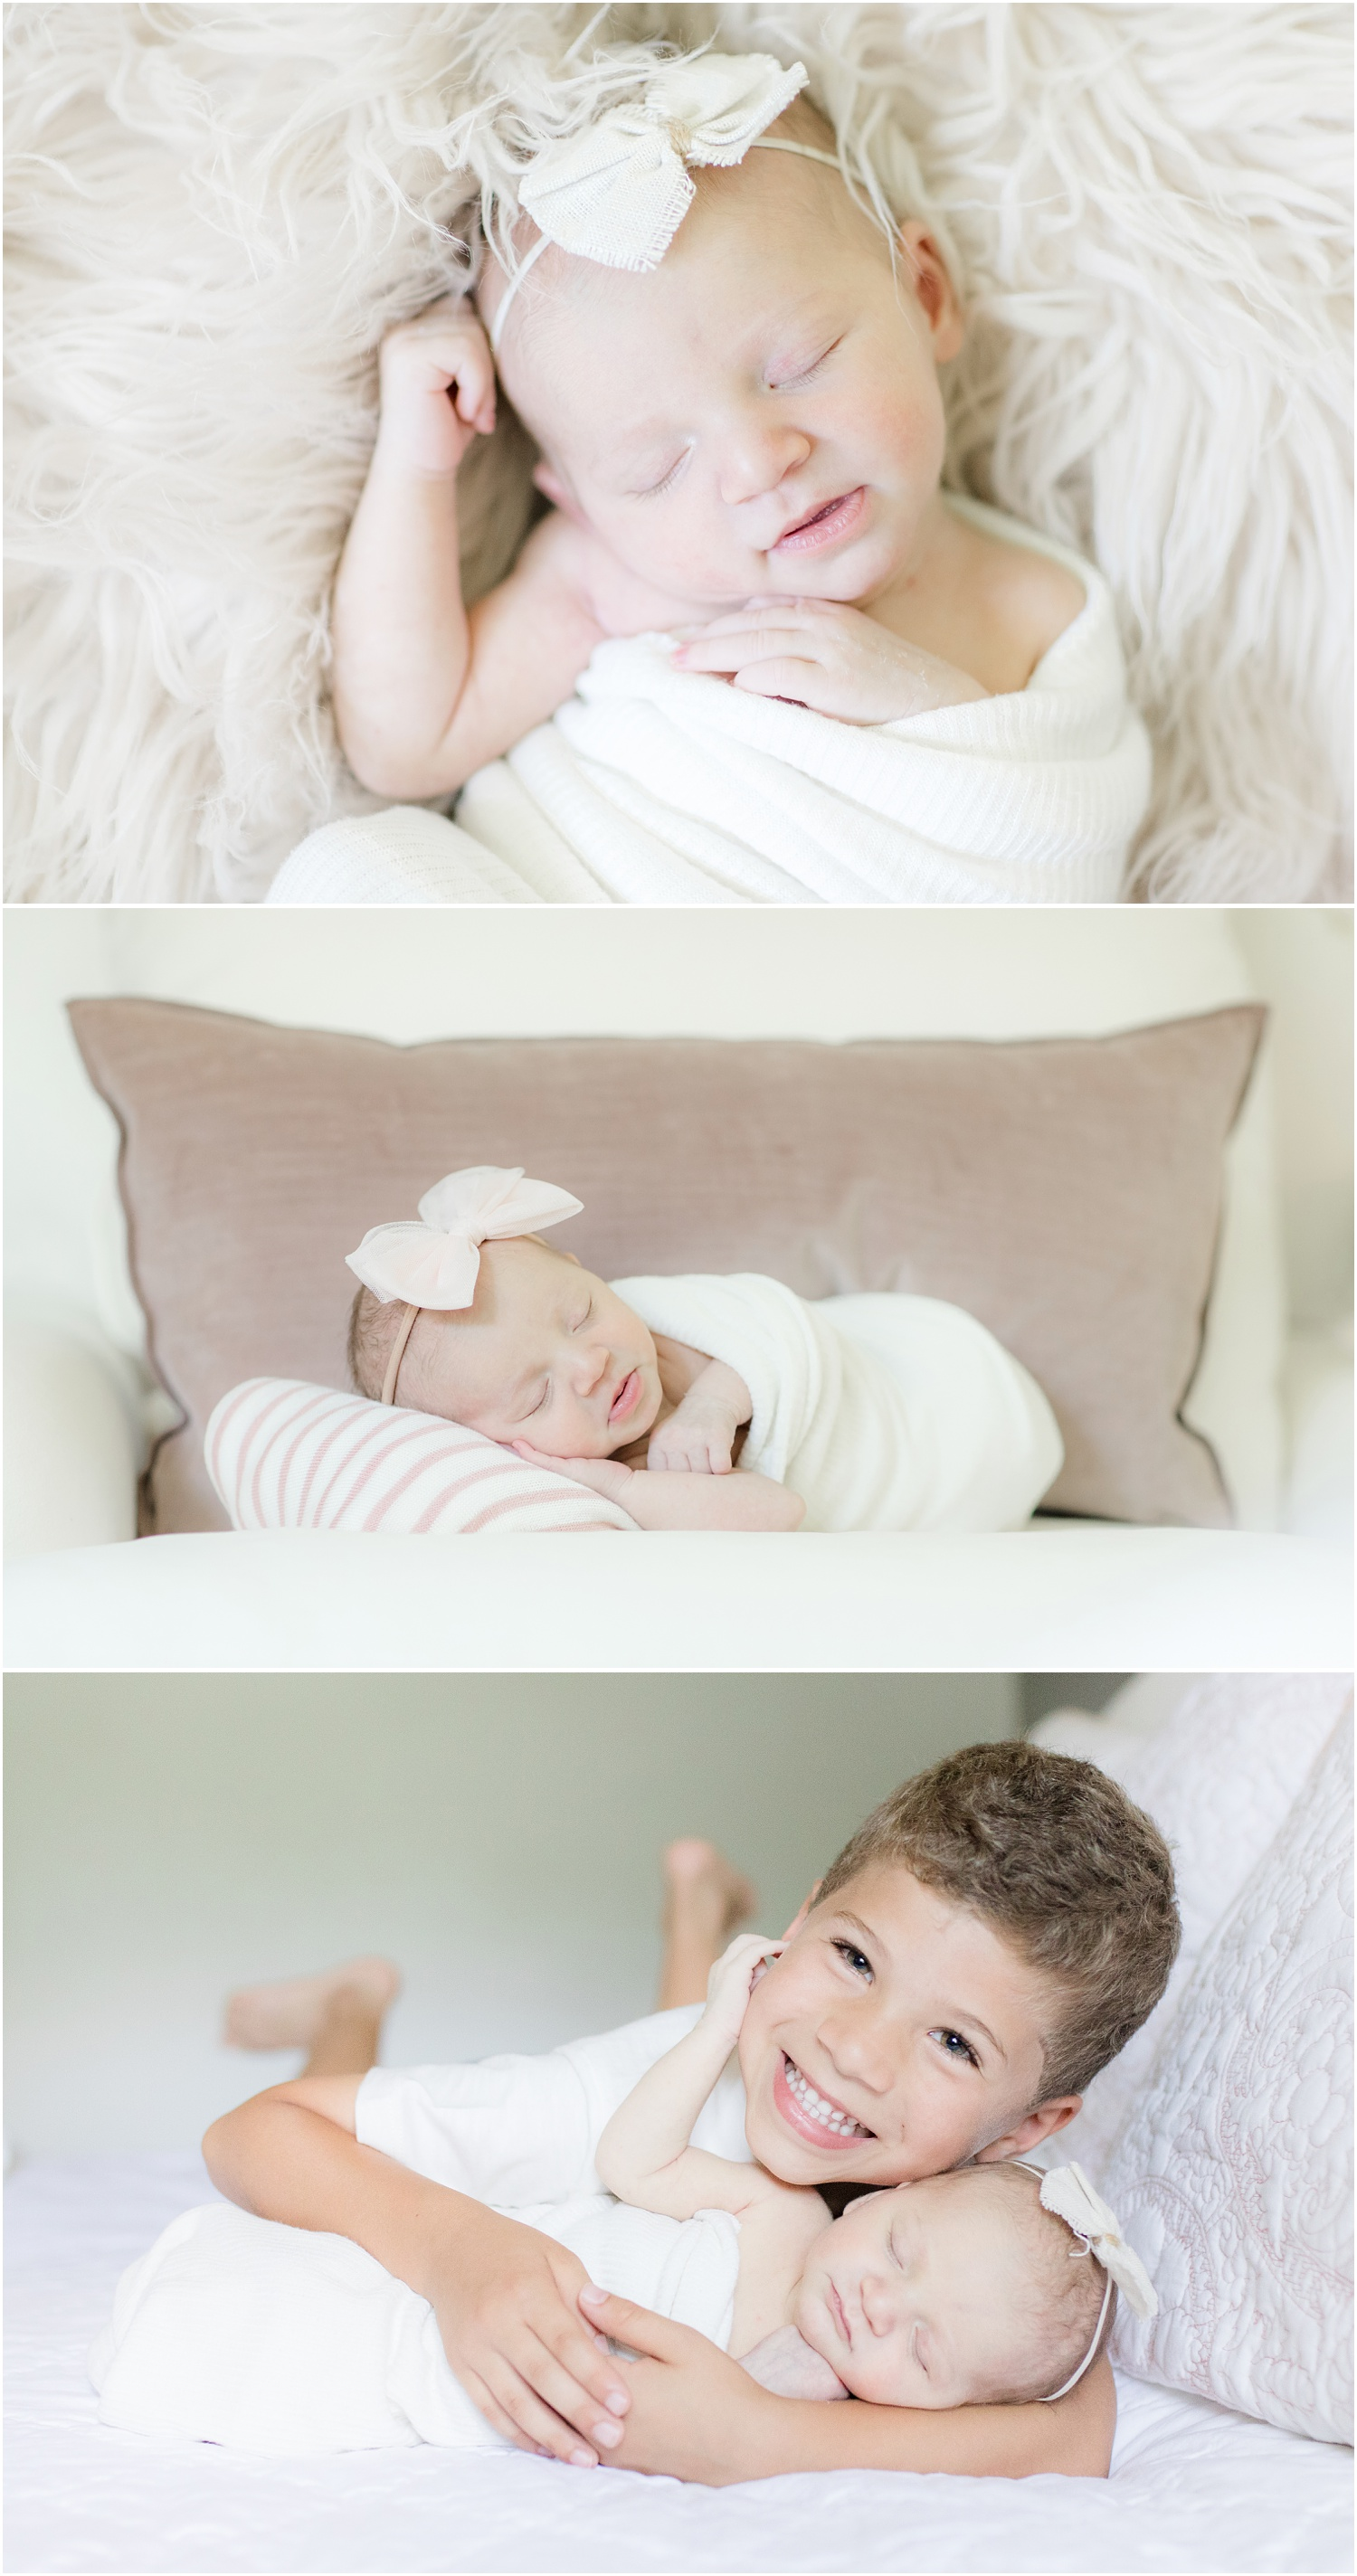 Photo of newborn baby girl and her brother at home in Piscataway, NJ.